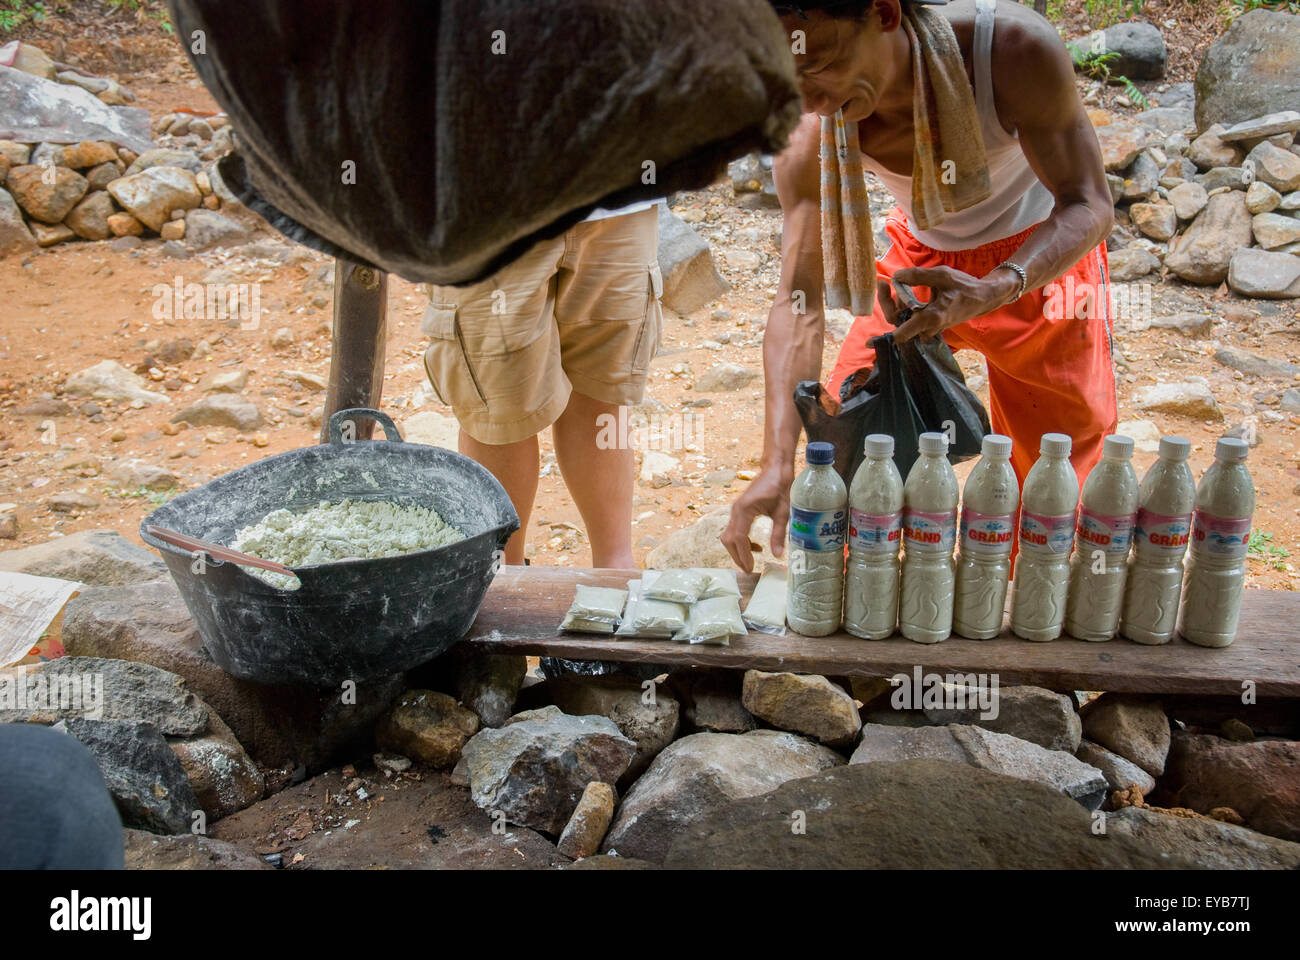 Man selling sulfur powders which are believed having curative effects to skin health. - Stock Image